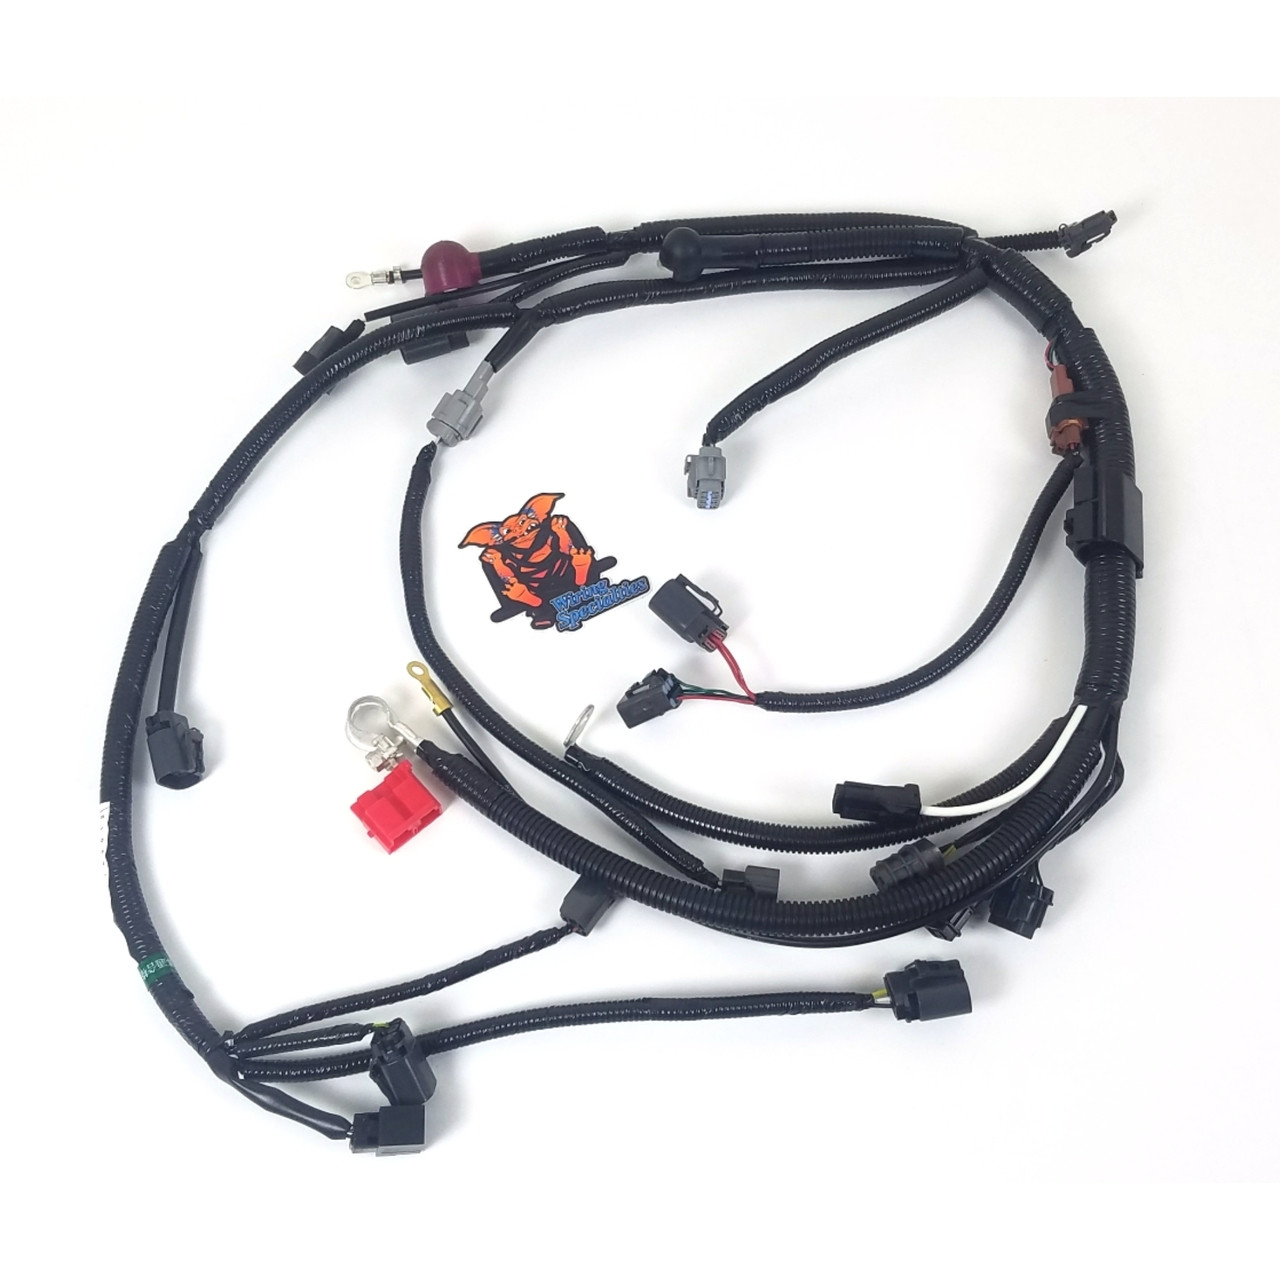 medium resolution of wiring specialties s14 ka24de lower harness for 240sx s14 ka24de wiring harness diagram ka24de wiring harness